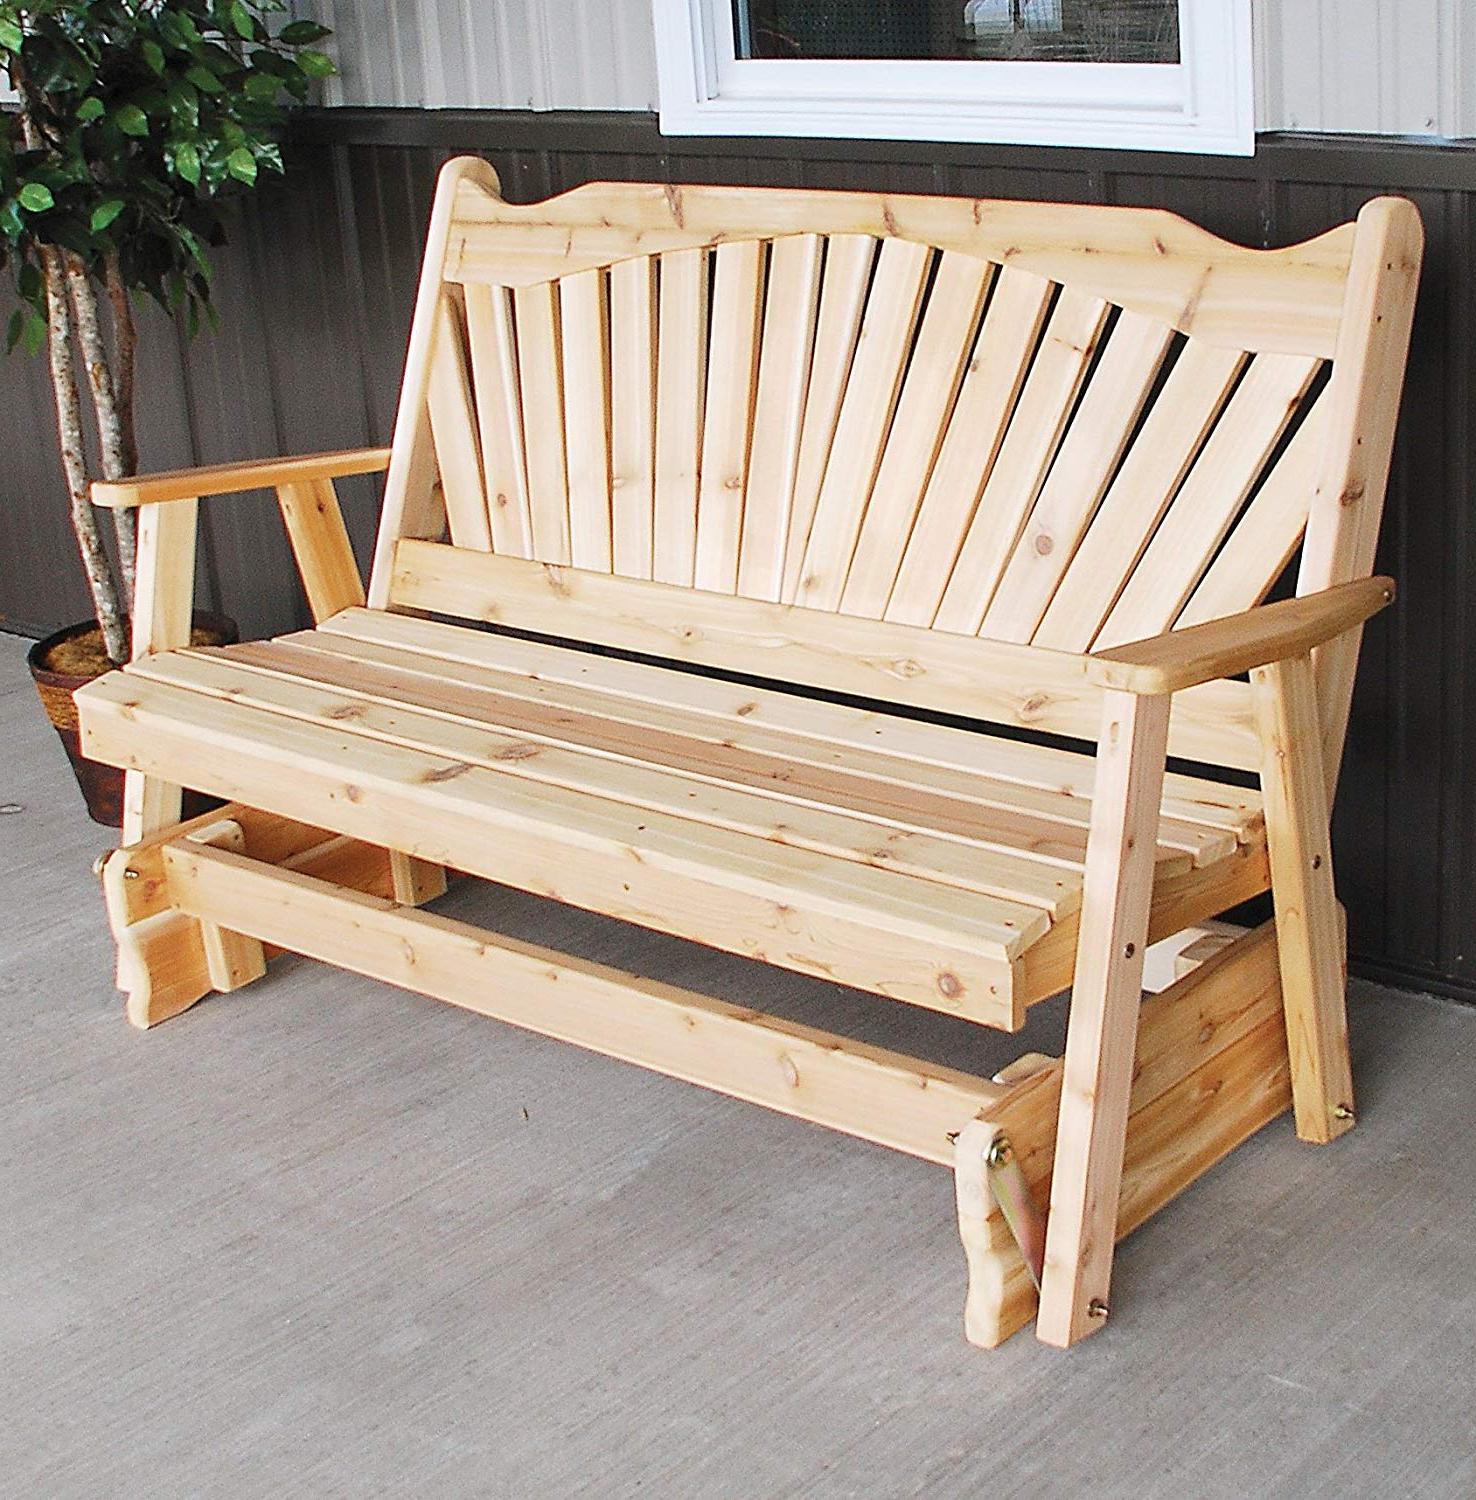 Trendy 2 Person Natural Cedar Wood Outdoor Gliders Regarding Cedar Porch Glider Bench Outdoor Patio Gliding Bench, 2 Person Wooden  Loveseat Benches, Amish Made Furniture Weather Resistant Western Red Cedar  Wood, (Gallery 2 of 30)